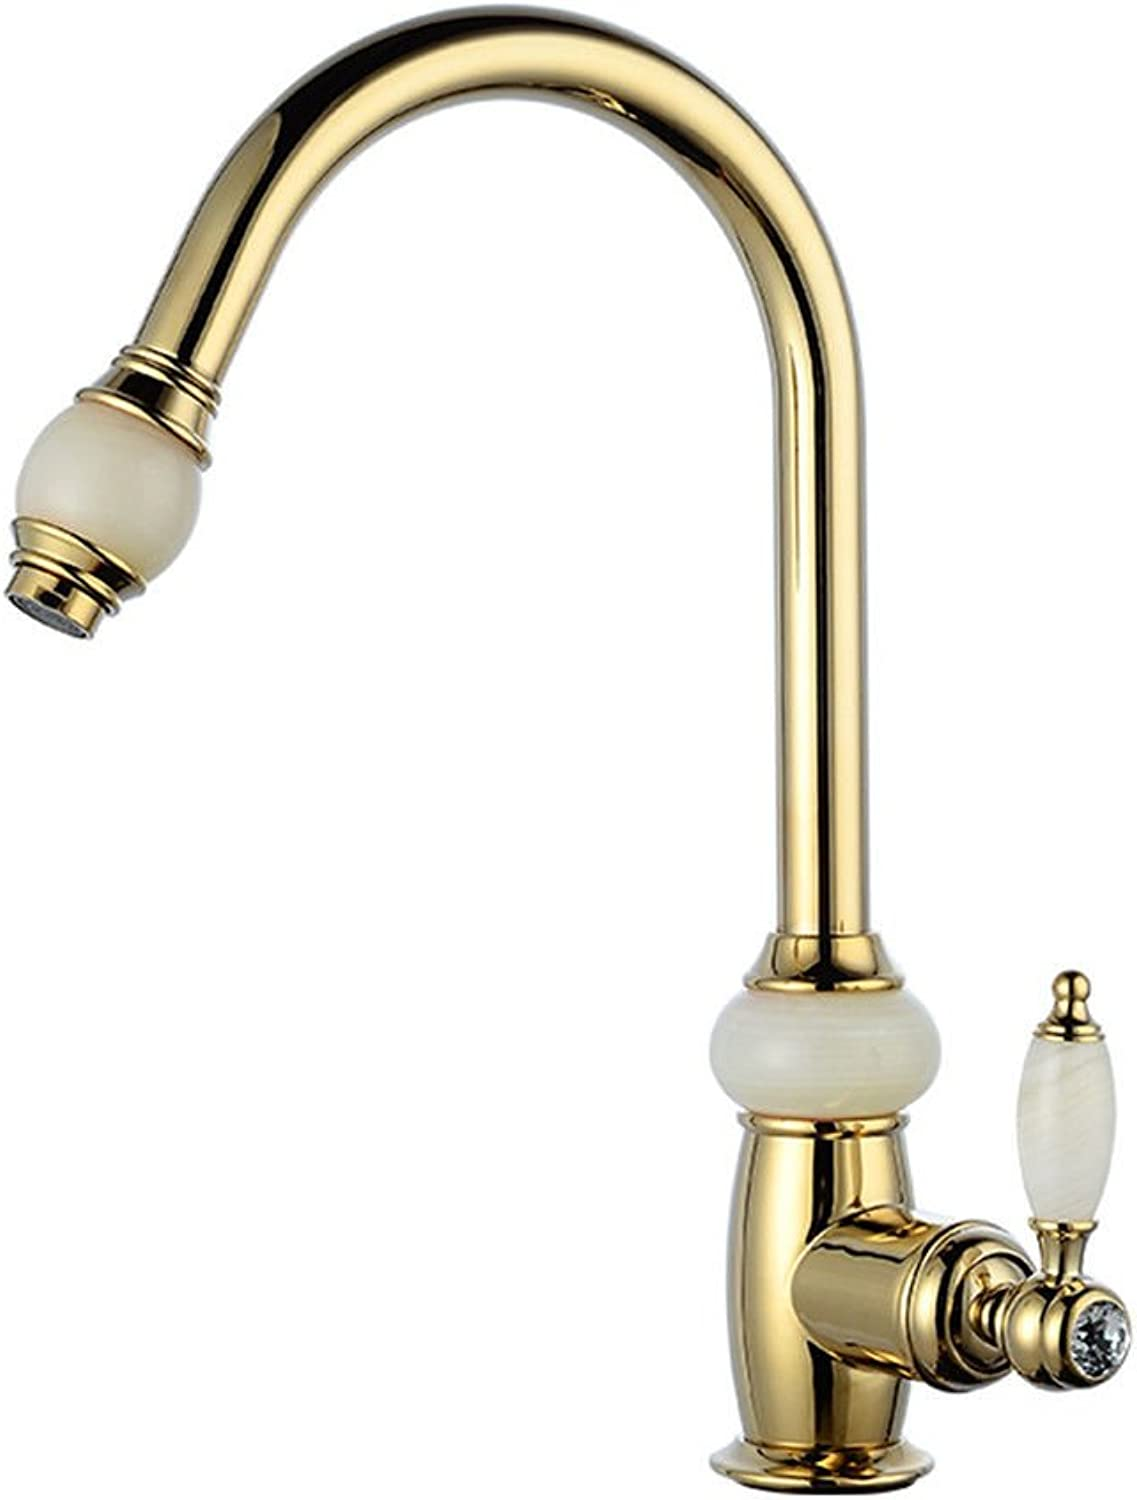 Commercial Single Lever Pull Down Kitchen Sink Faucet Brass Constructed Polished Copper Pull-Out gold Faucet Kitchen Single Hole Hot and Cold Water Faucet